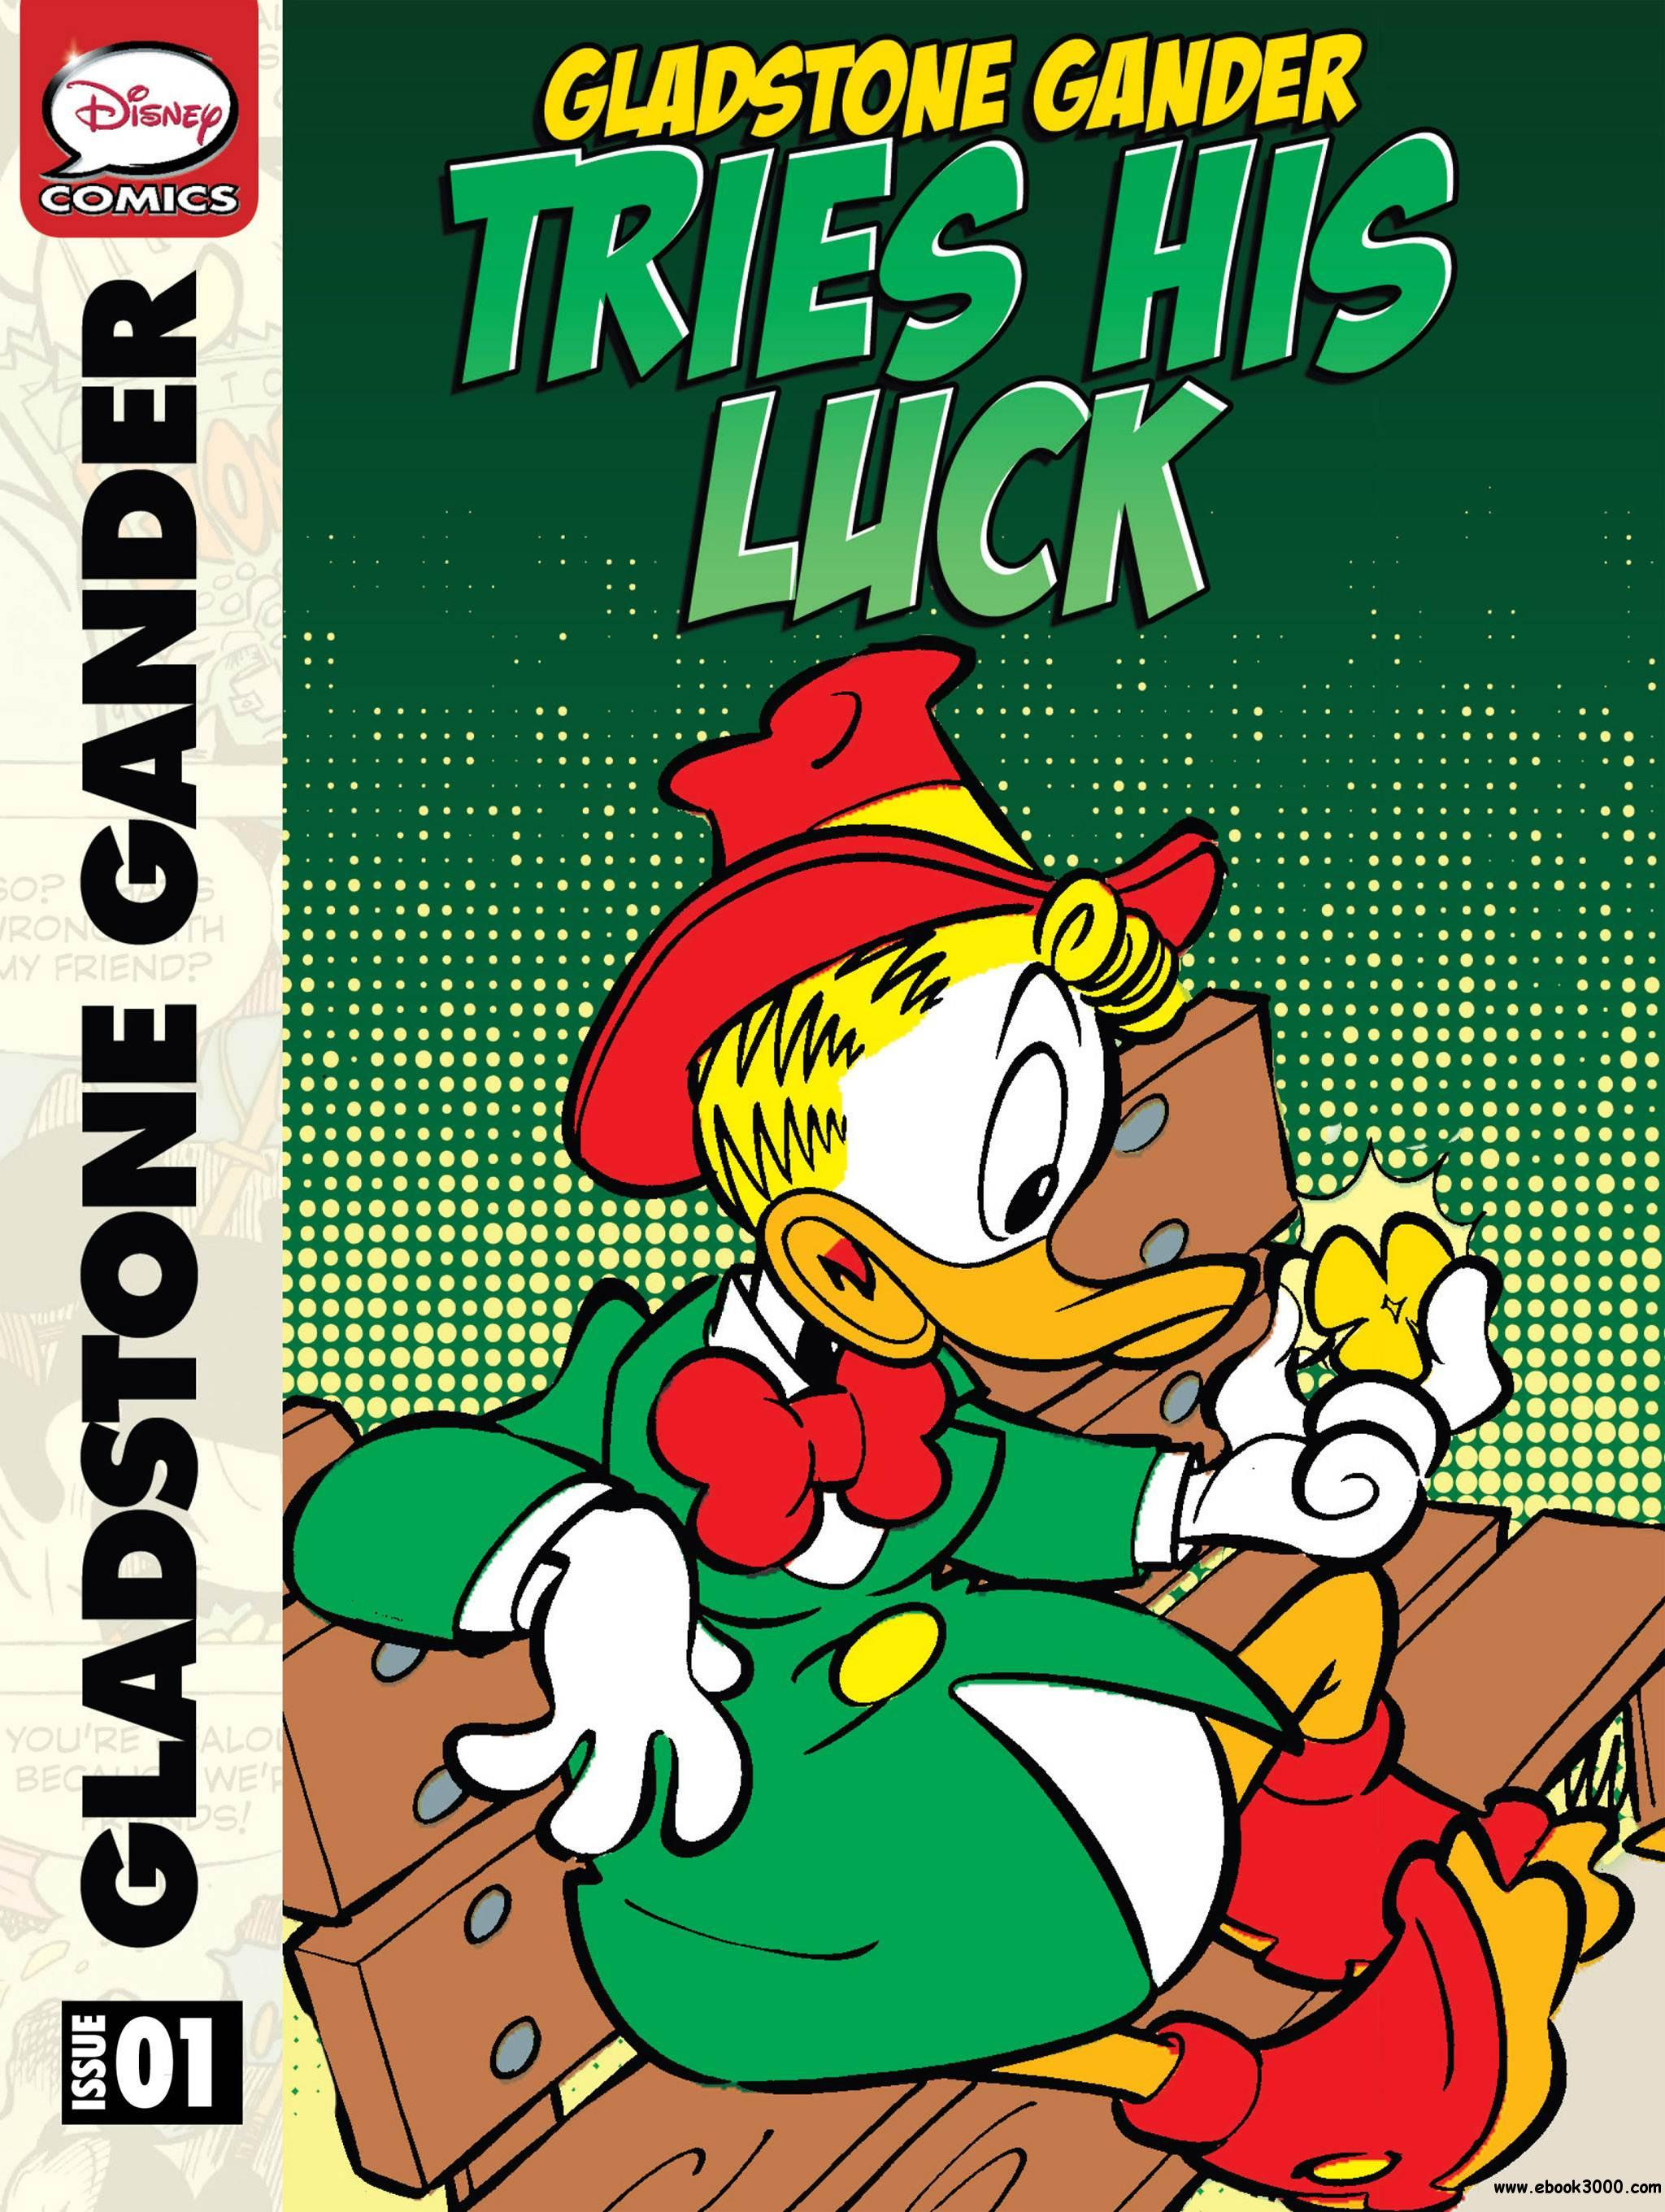 Gladstone Gander Tries His Luck (2013) free download